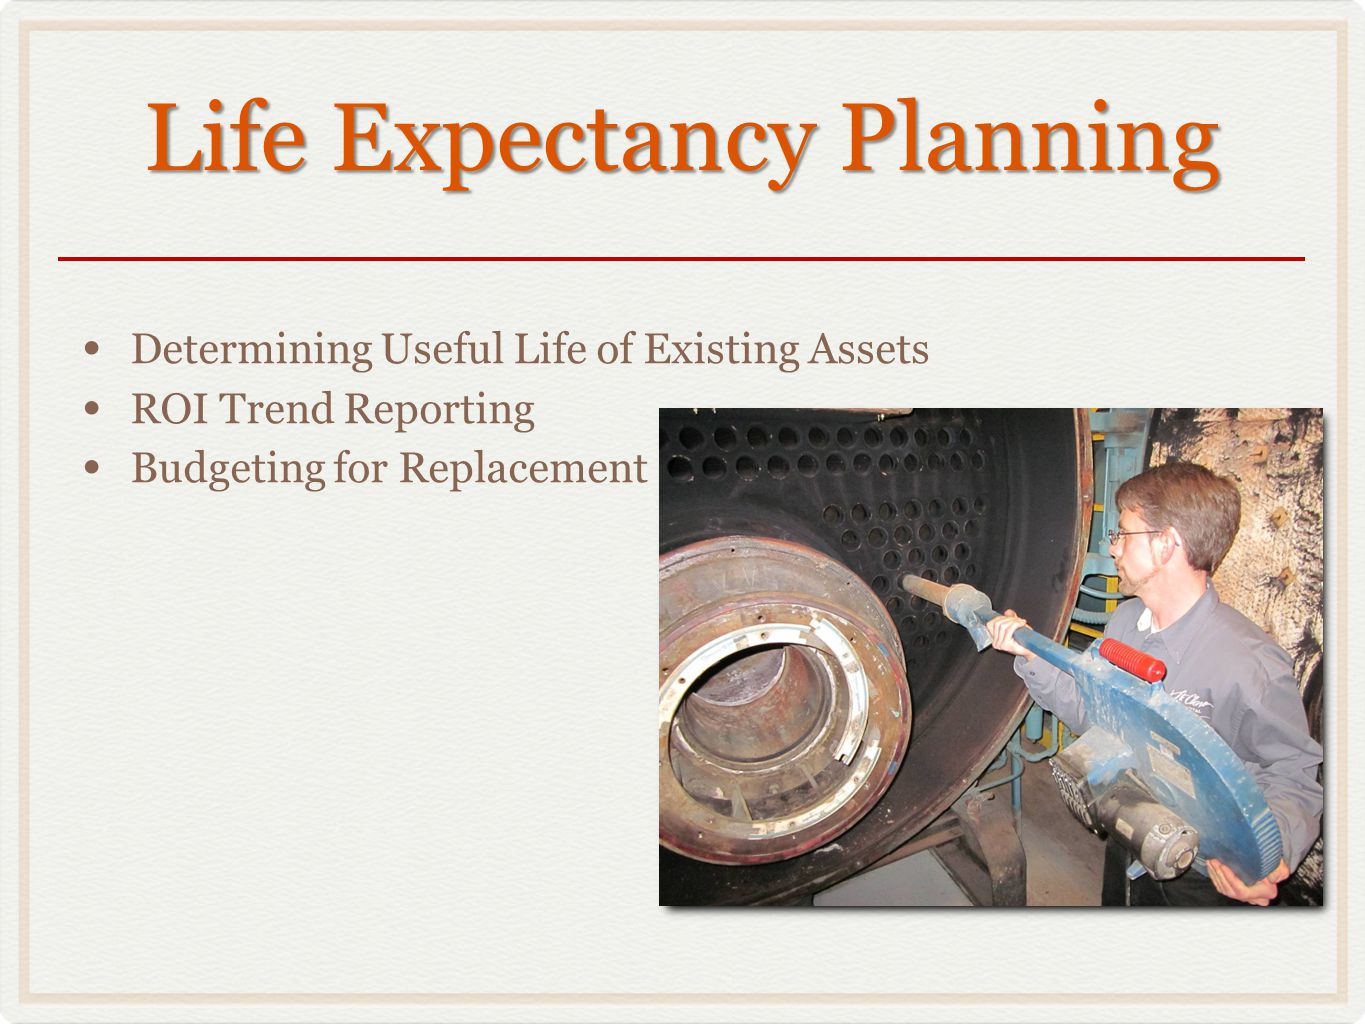 Life Expectancy Planning Determining Useful Life of Existing Assets ROI Trend Reporting Budgeting for Replacement